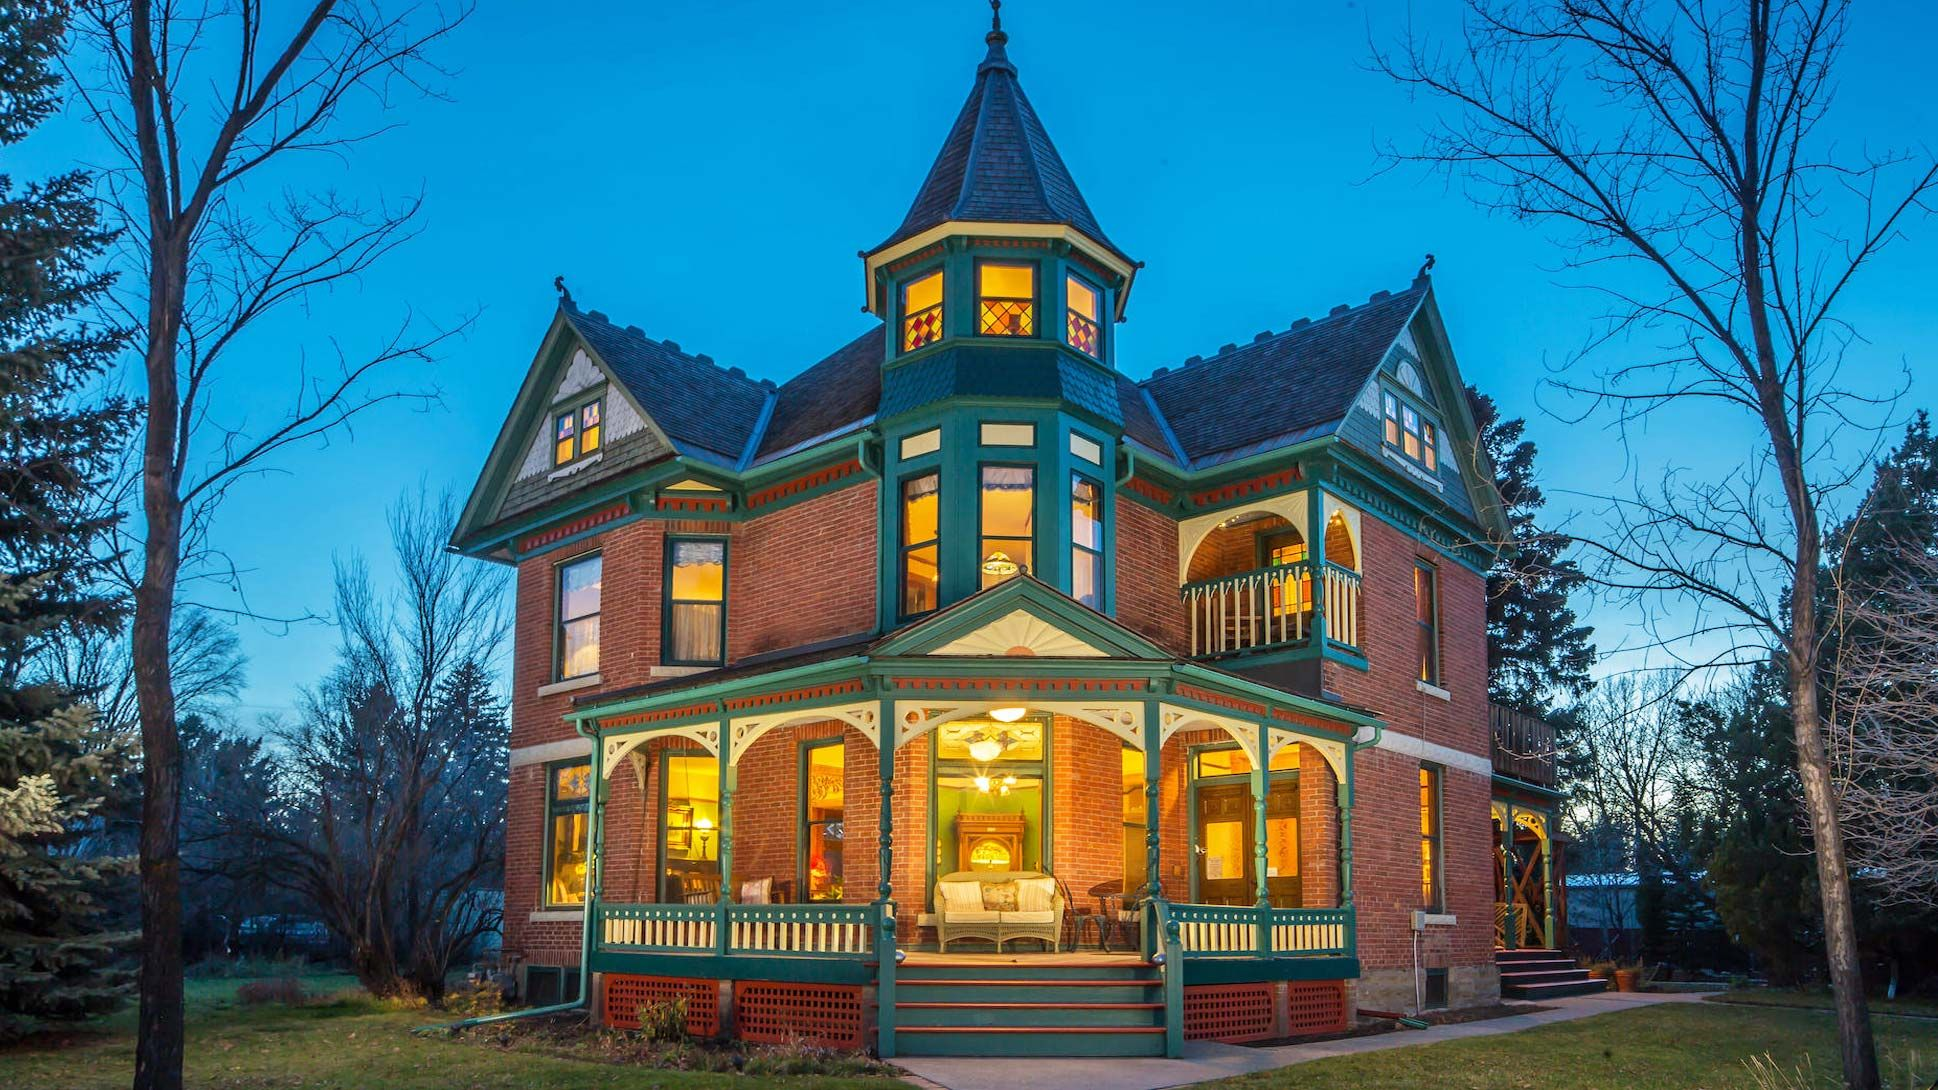 The True Price of History: What a Historic Home Will Cost You